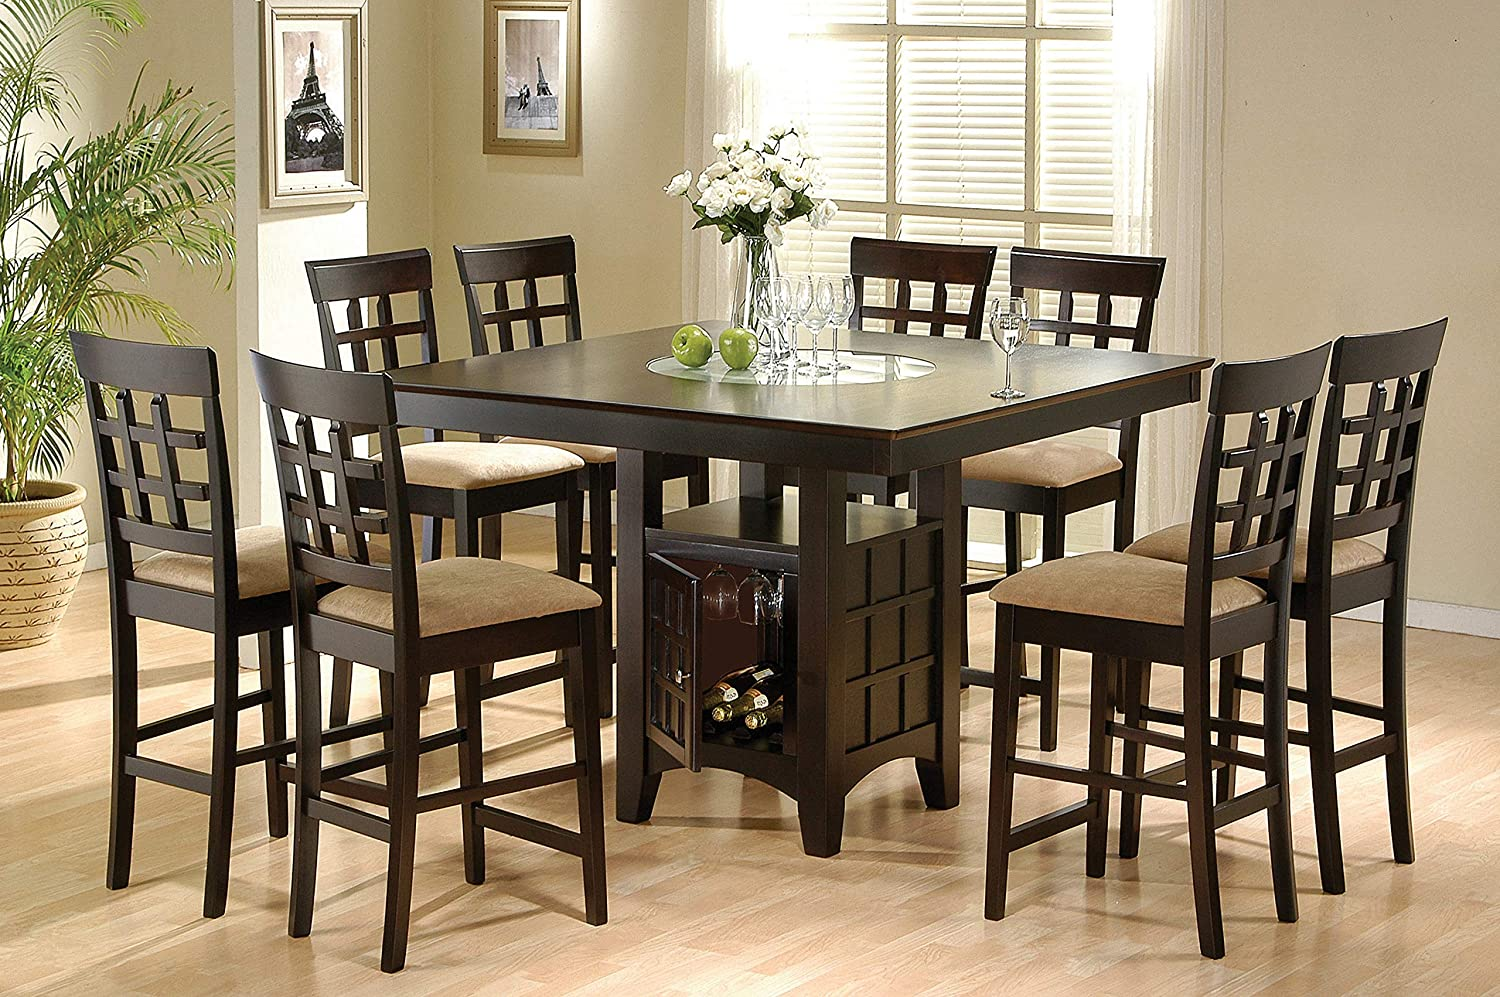 Coaster Home Furnishings Clanton 7-Piece Square Dining Counter Height Set, Table, Cappuccino and tan